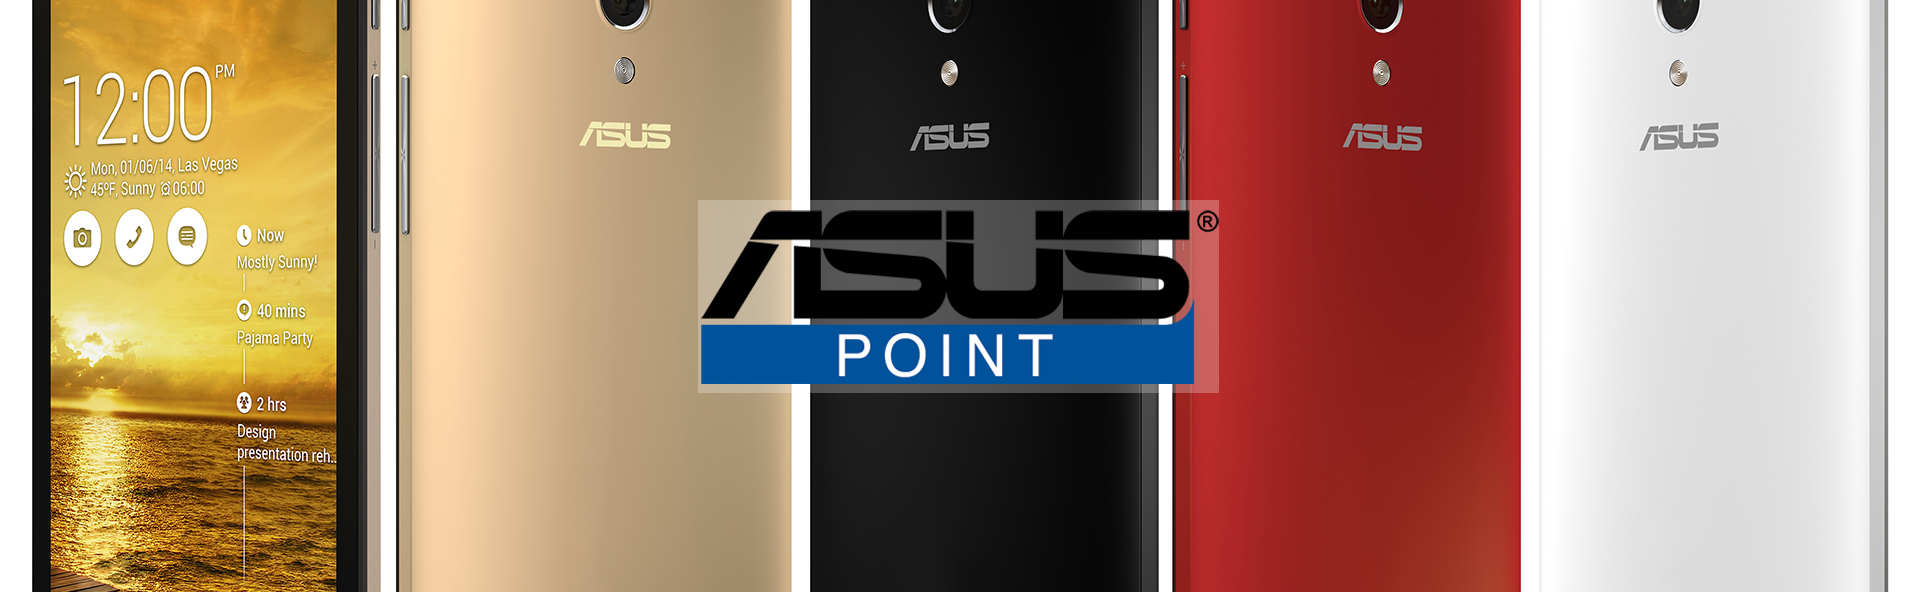 Asus Point